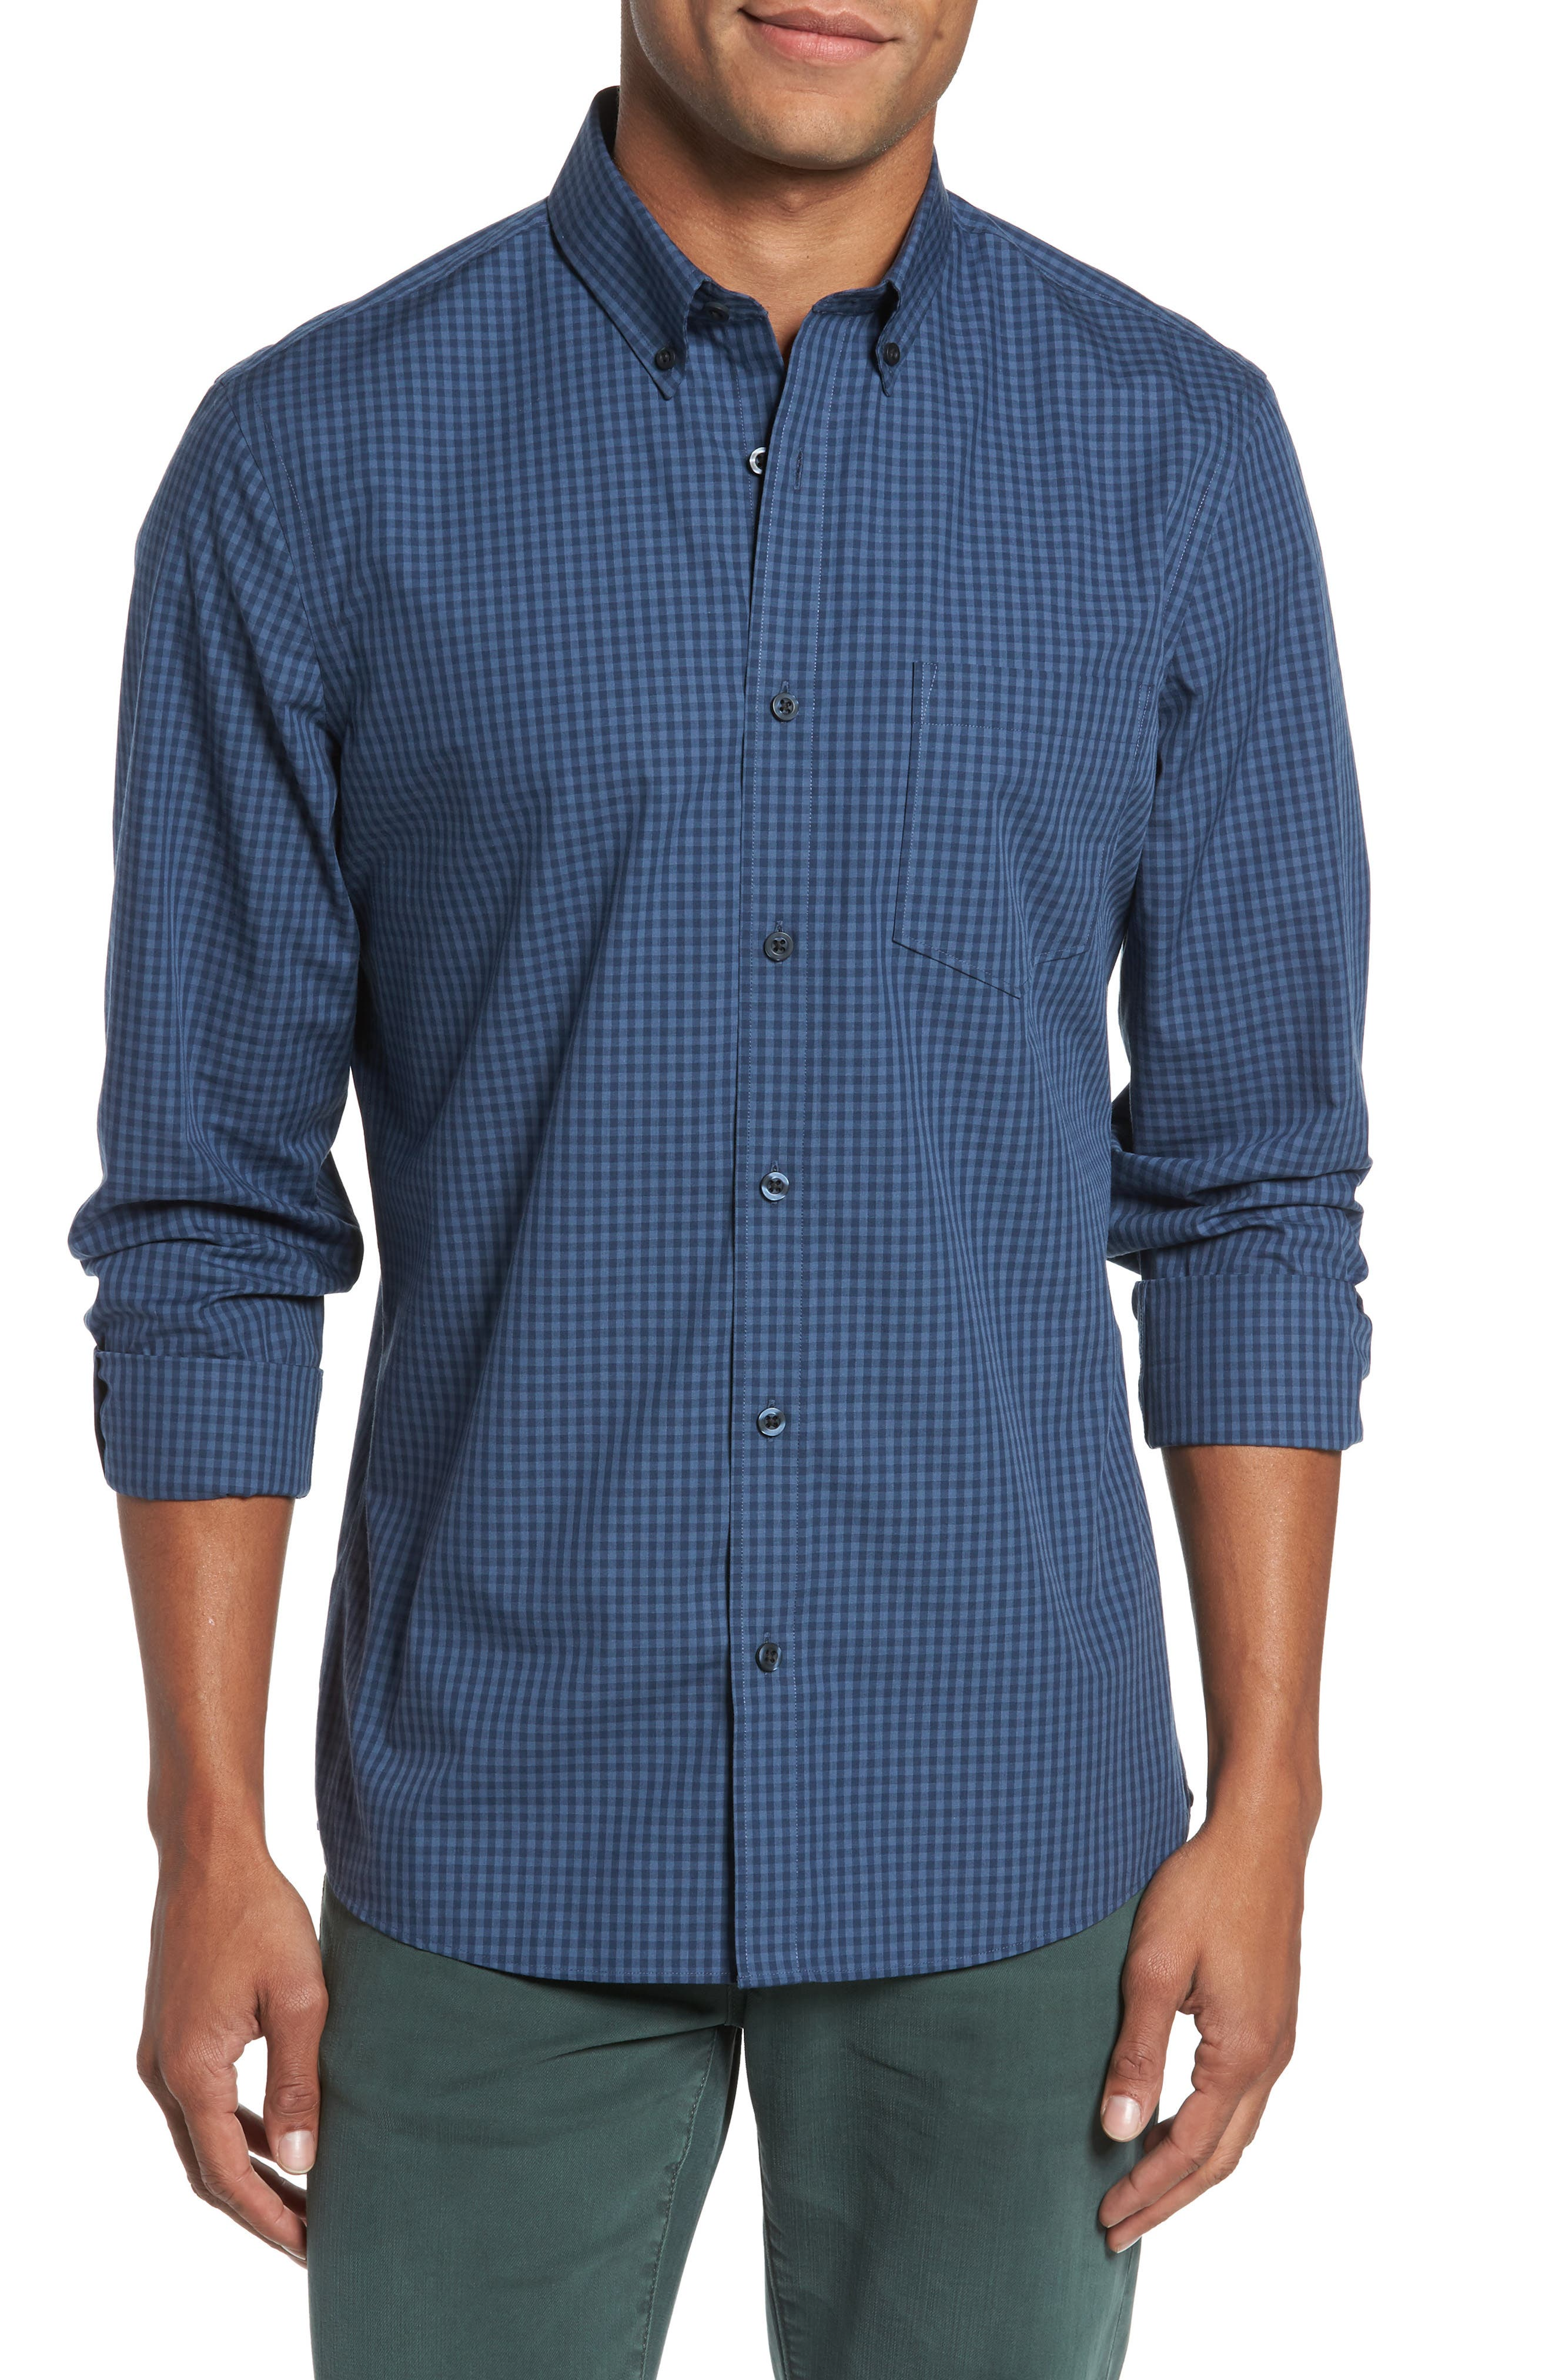 Nordstrom Men's Shop Trim Fit Non-Iron Gingham Sport Shirt